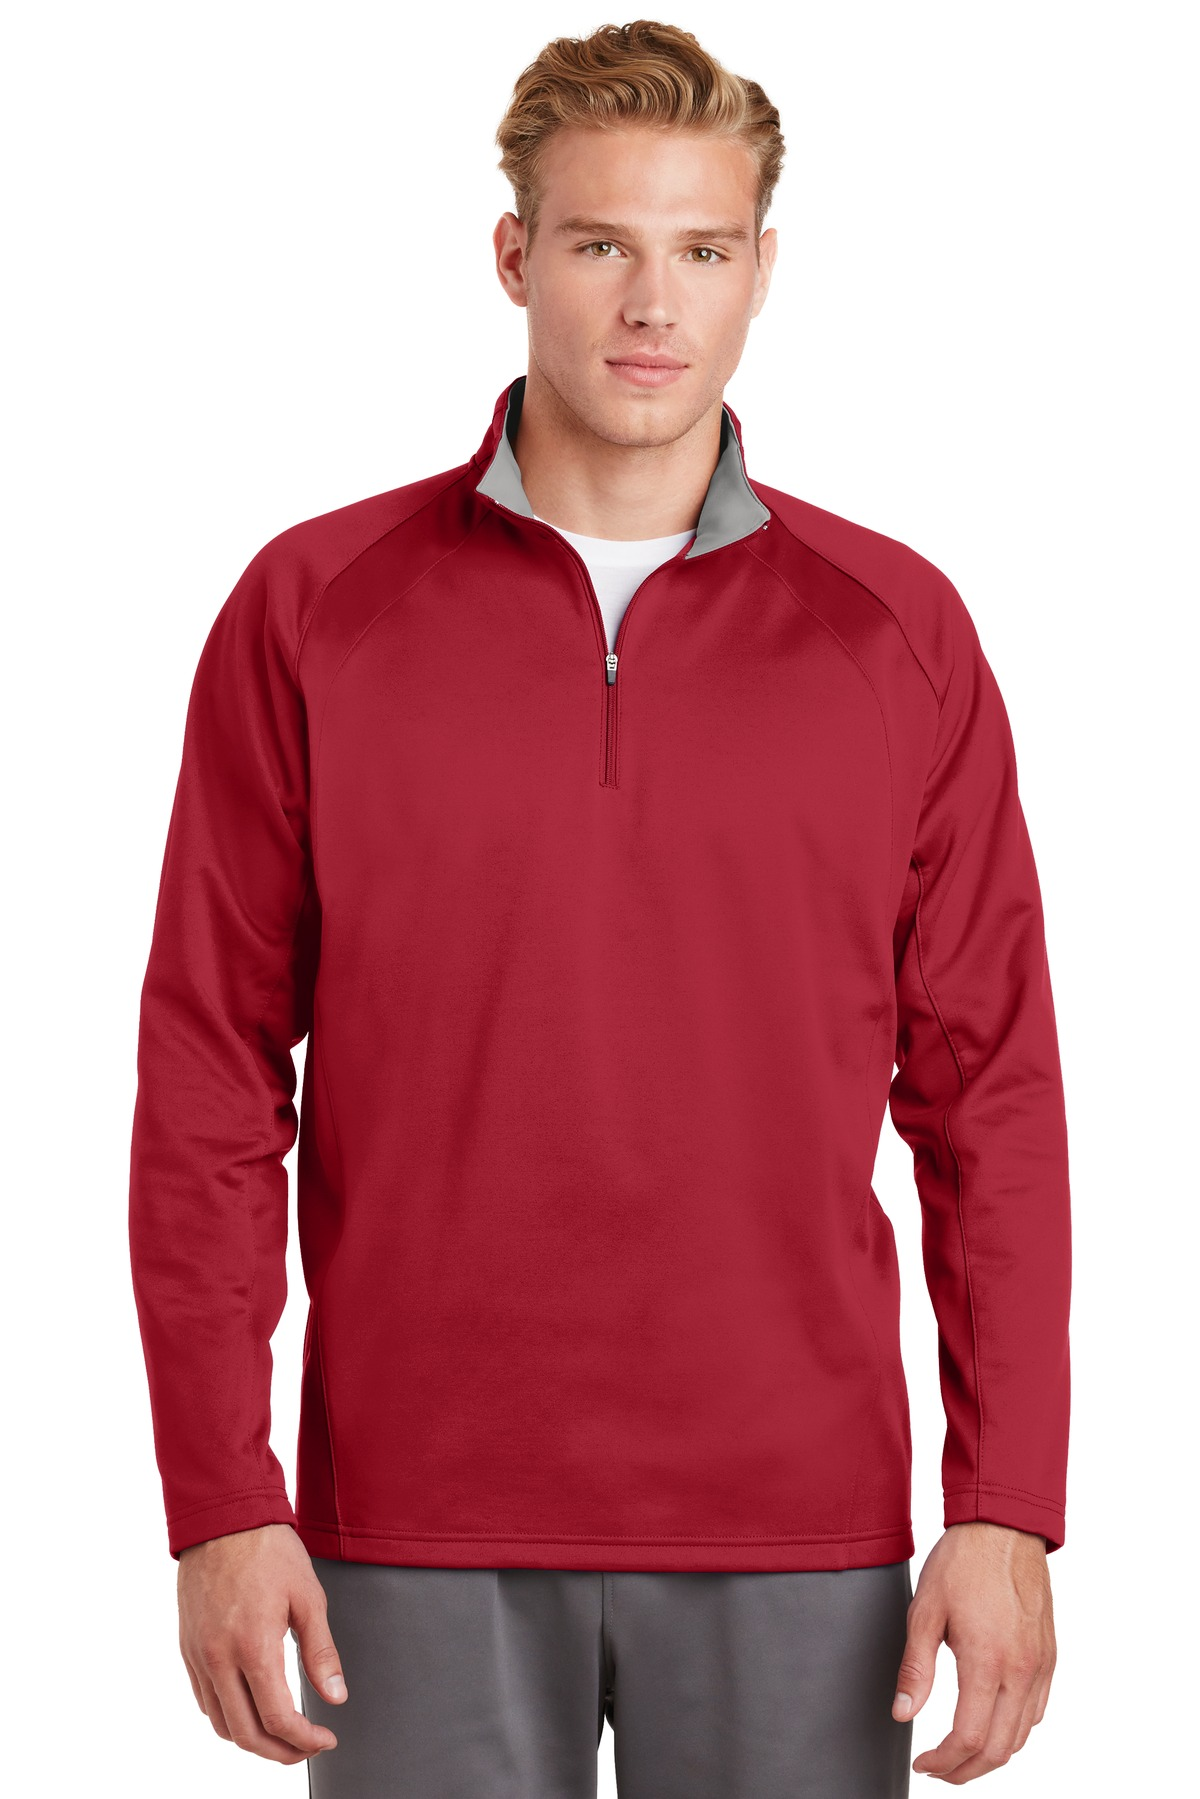 Sport-Tek ®  Sport-Wick ®  Fleece 1/4-Zip Pullover.  F243 - Deep Red/ Silver